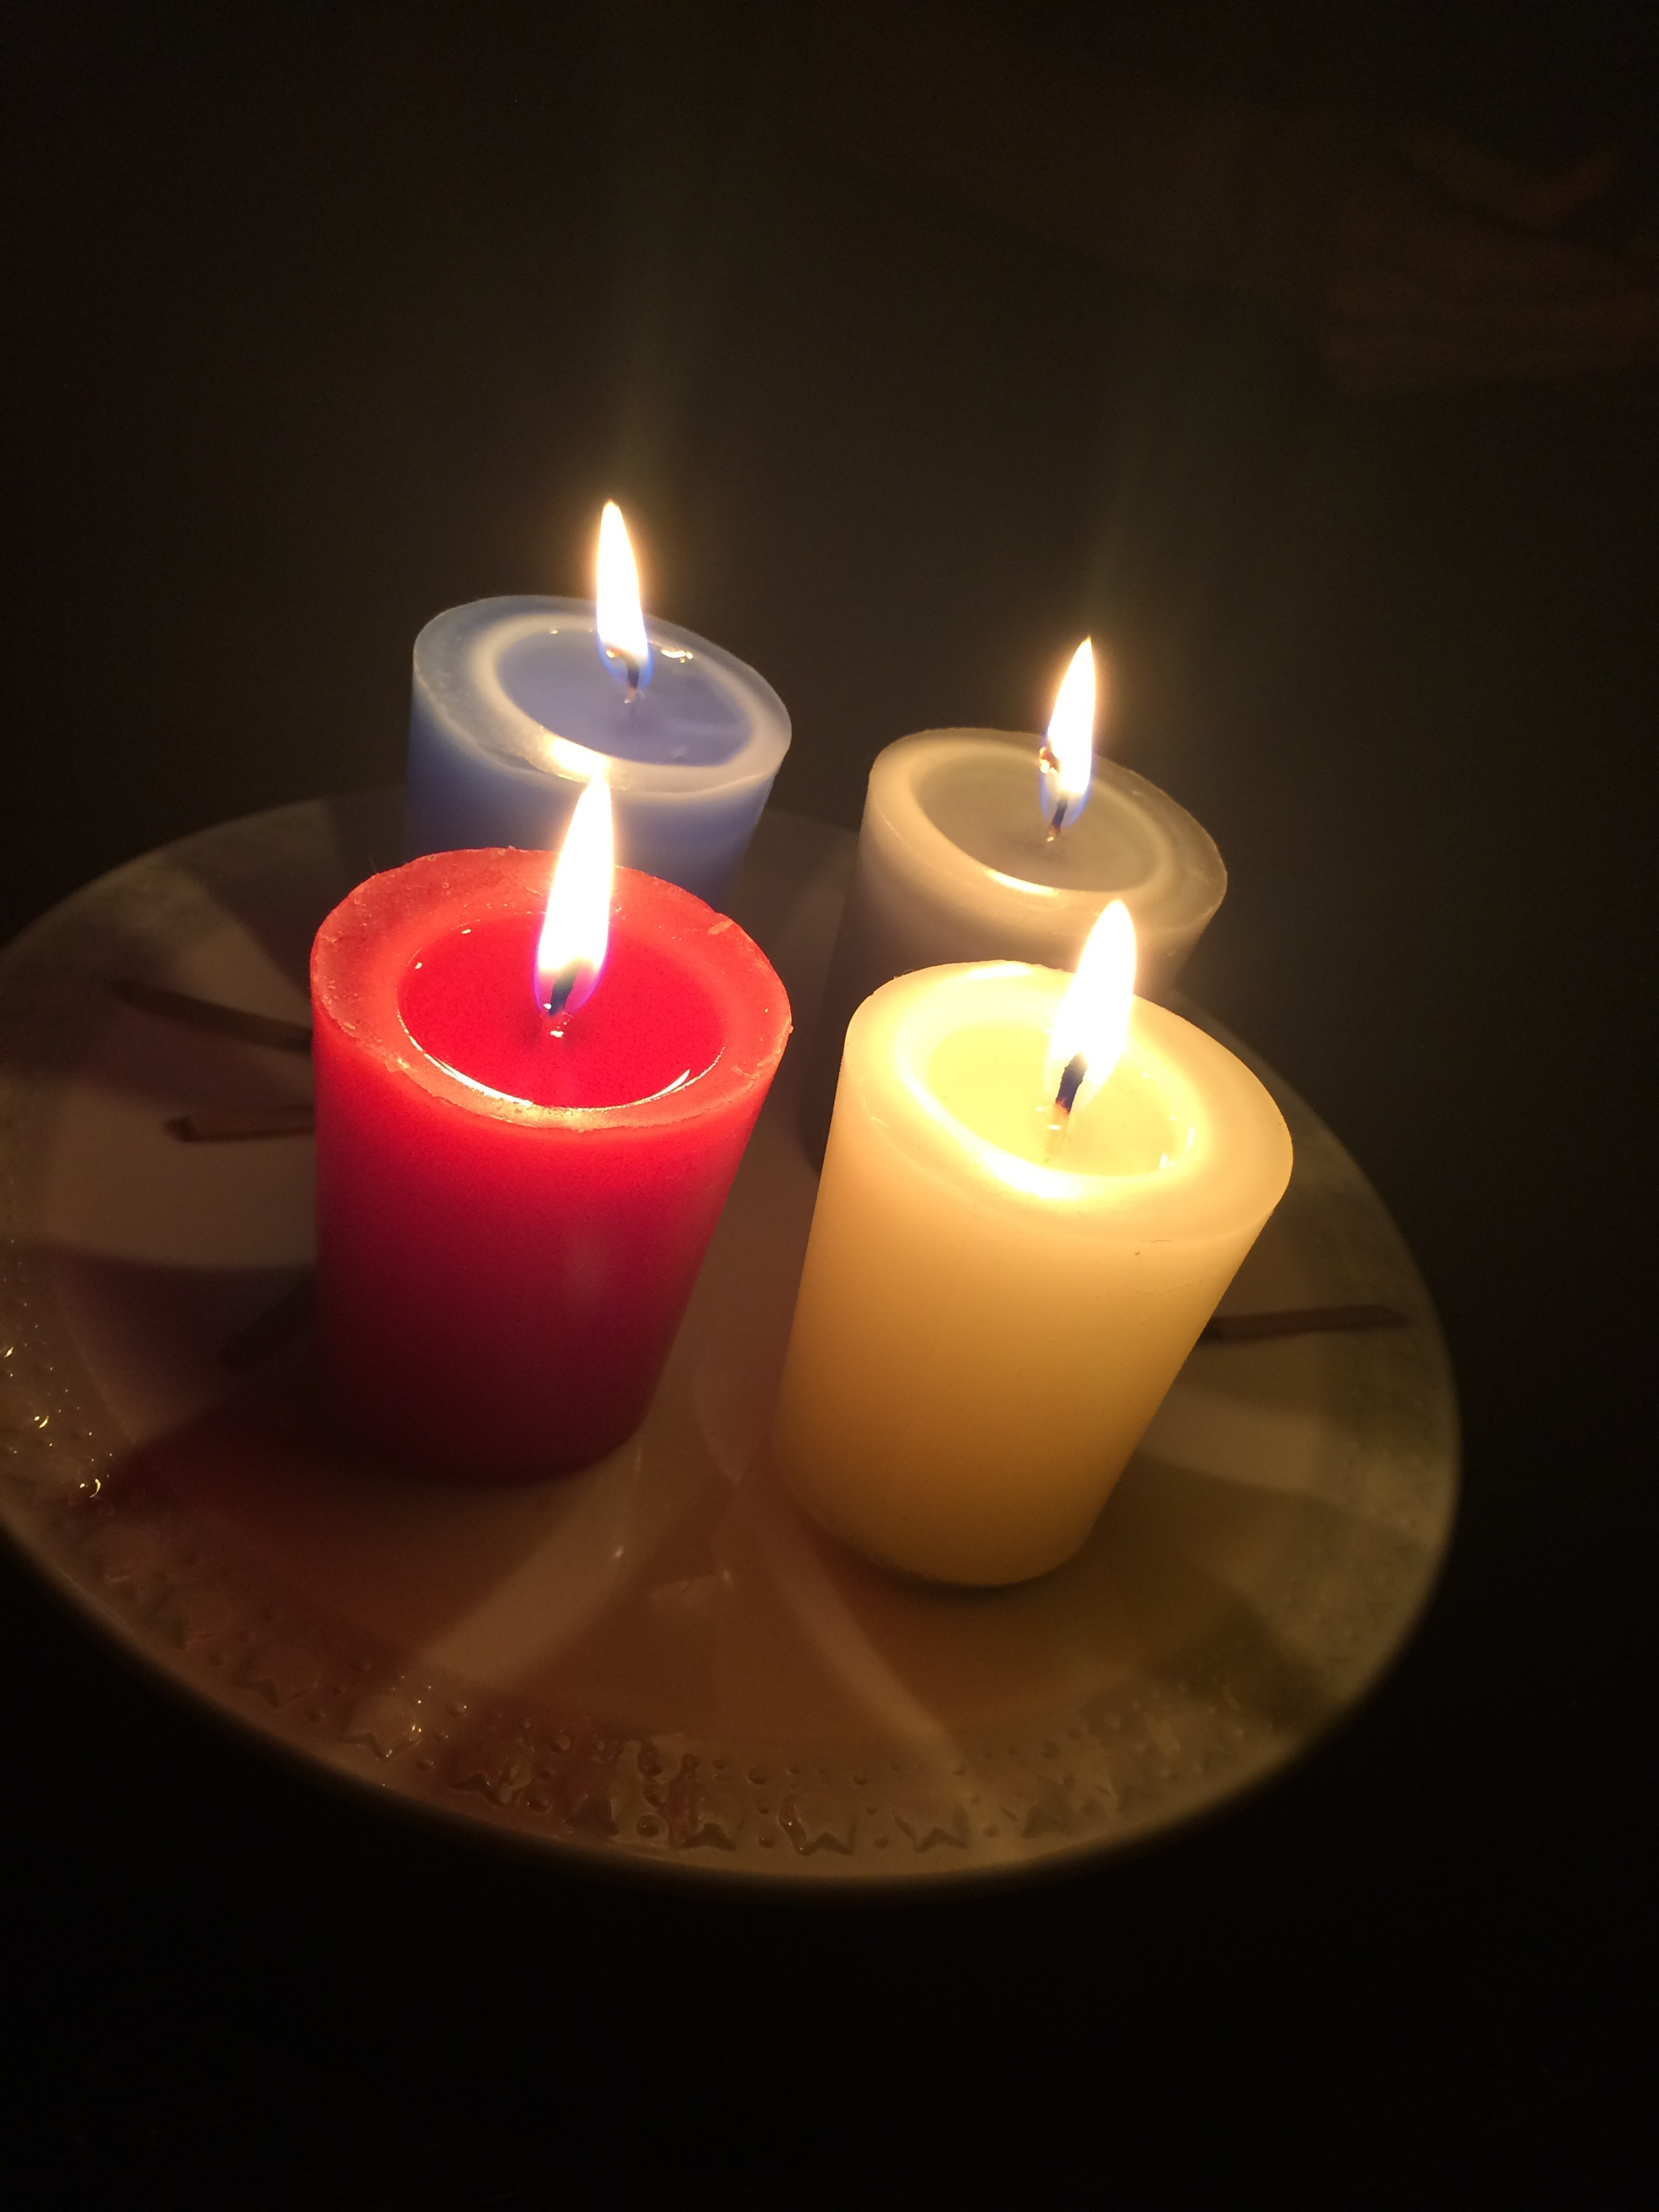 four votive candles burning, yellow, red, blue, green - May 5, 2017